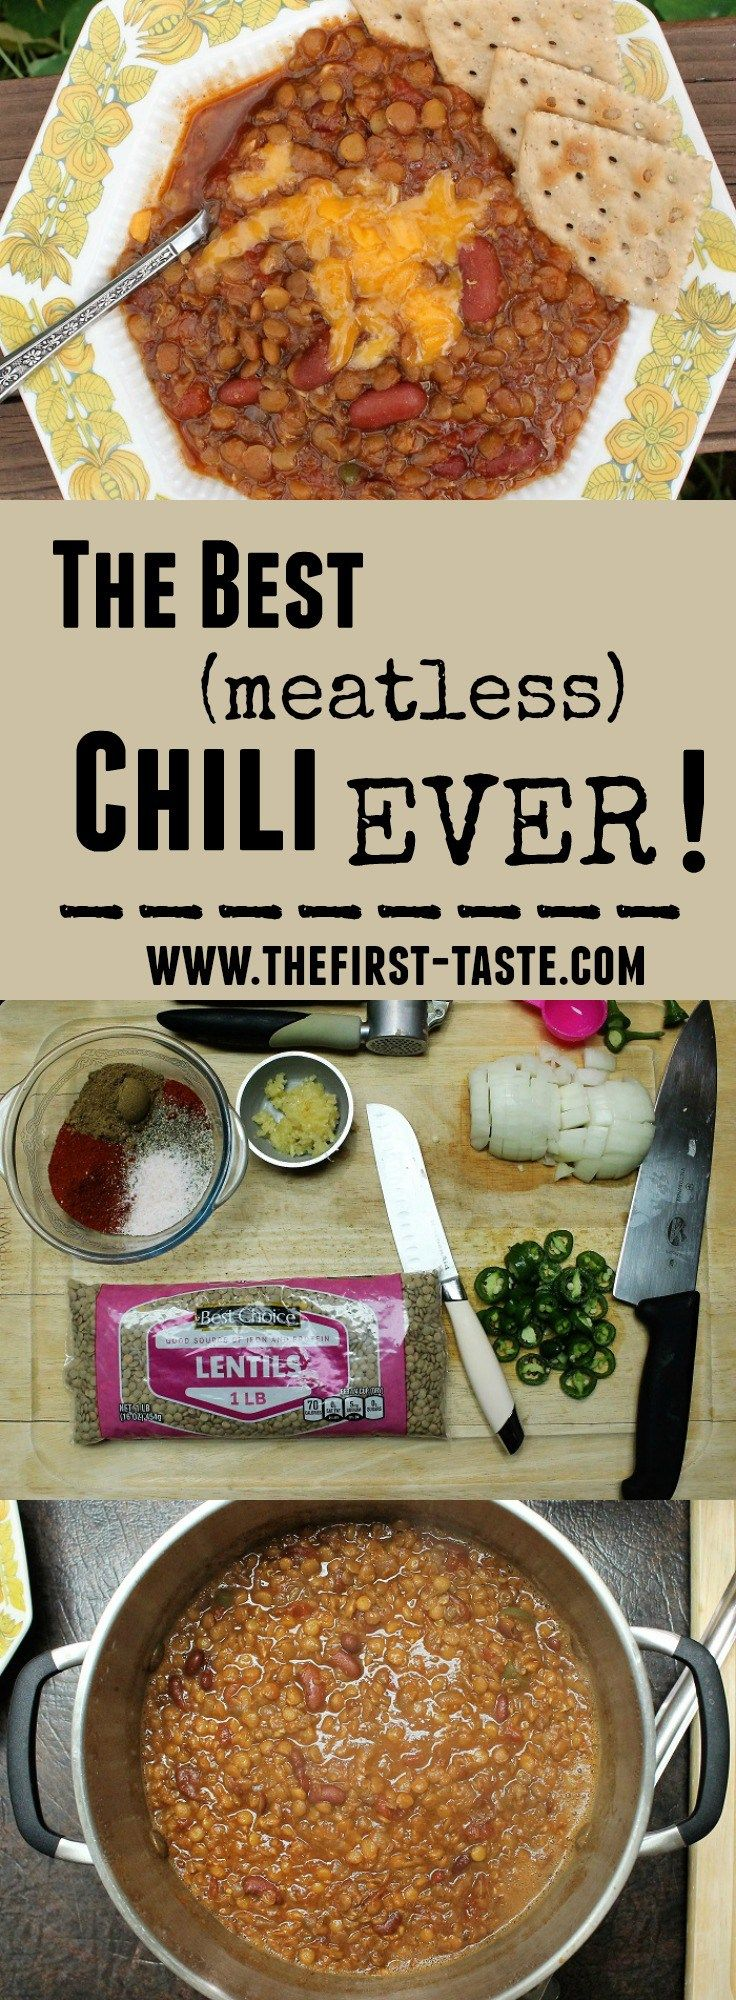 The Best (meatless) Chili EVER